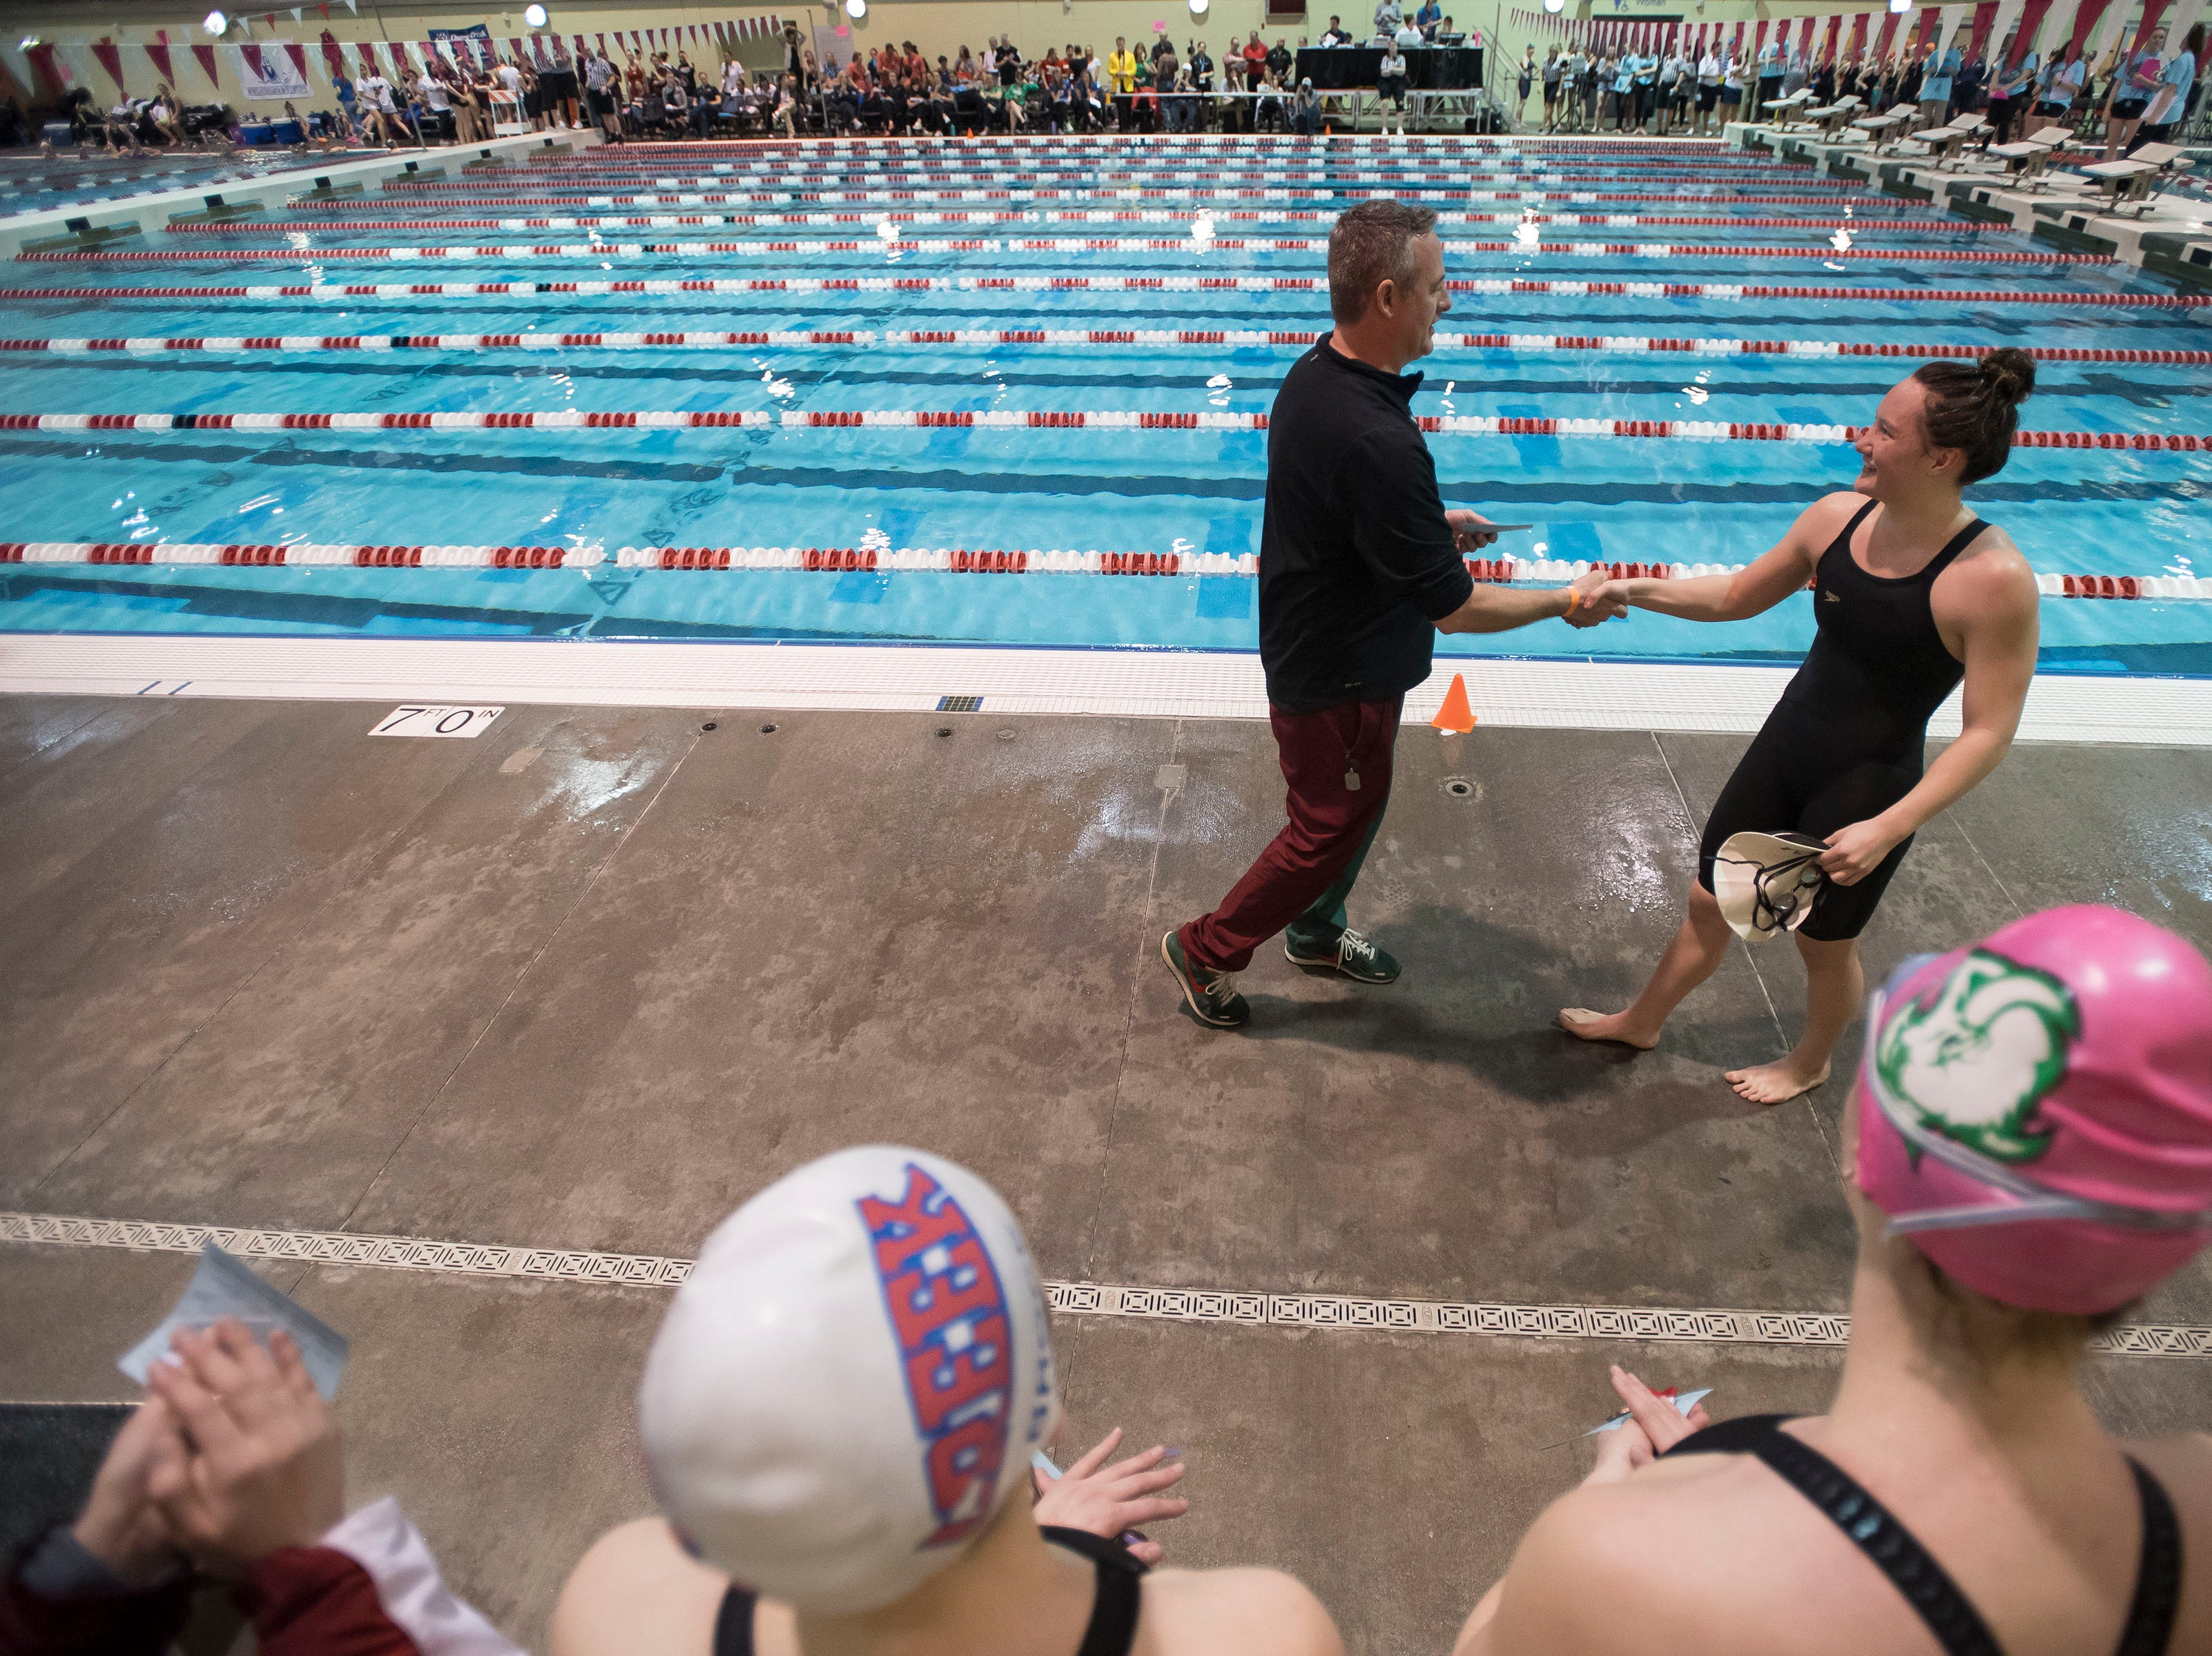 Fossil Ridge High School senior Coleen Gillilan shakes hands with Scott Cohen while receiving her medal for winning the women's 100 yard backstroke on Saturday, Feb. 9, 2019, at Veterans Memorial Aquatic Center in Thornton, Colo.